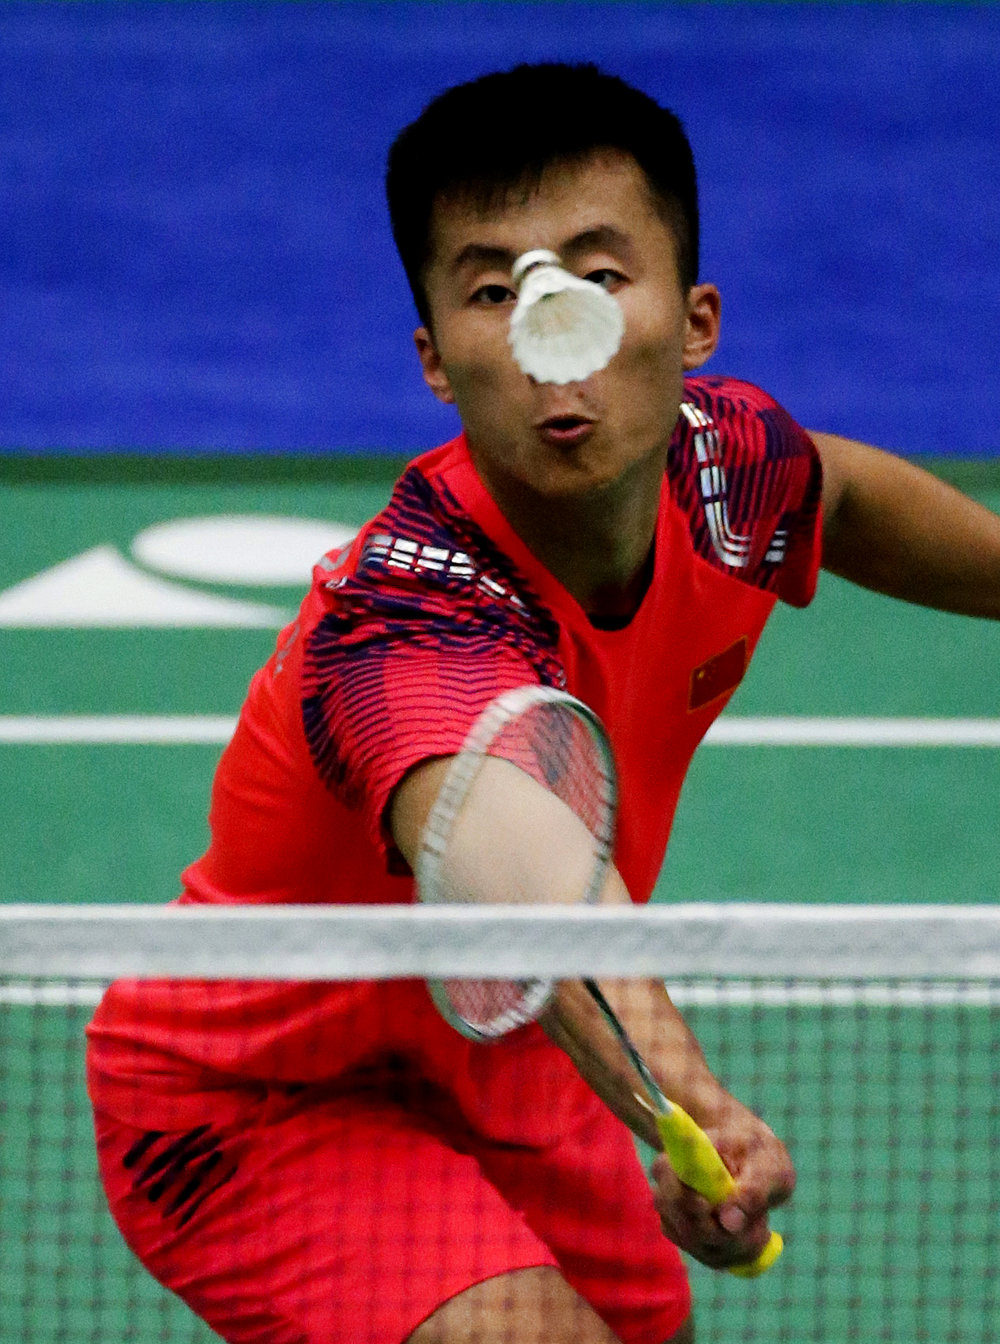 Lu Guangzu of China, returns a shot to Suppanyu Avihingsanon of Thai, in their men's singles during the second round of U.S. Open Badminton Championships on Thursday, June 14, 2018 in Los Angeles, the United States.  Lu won 2-1.